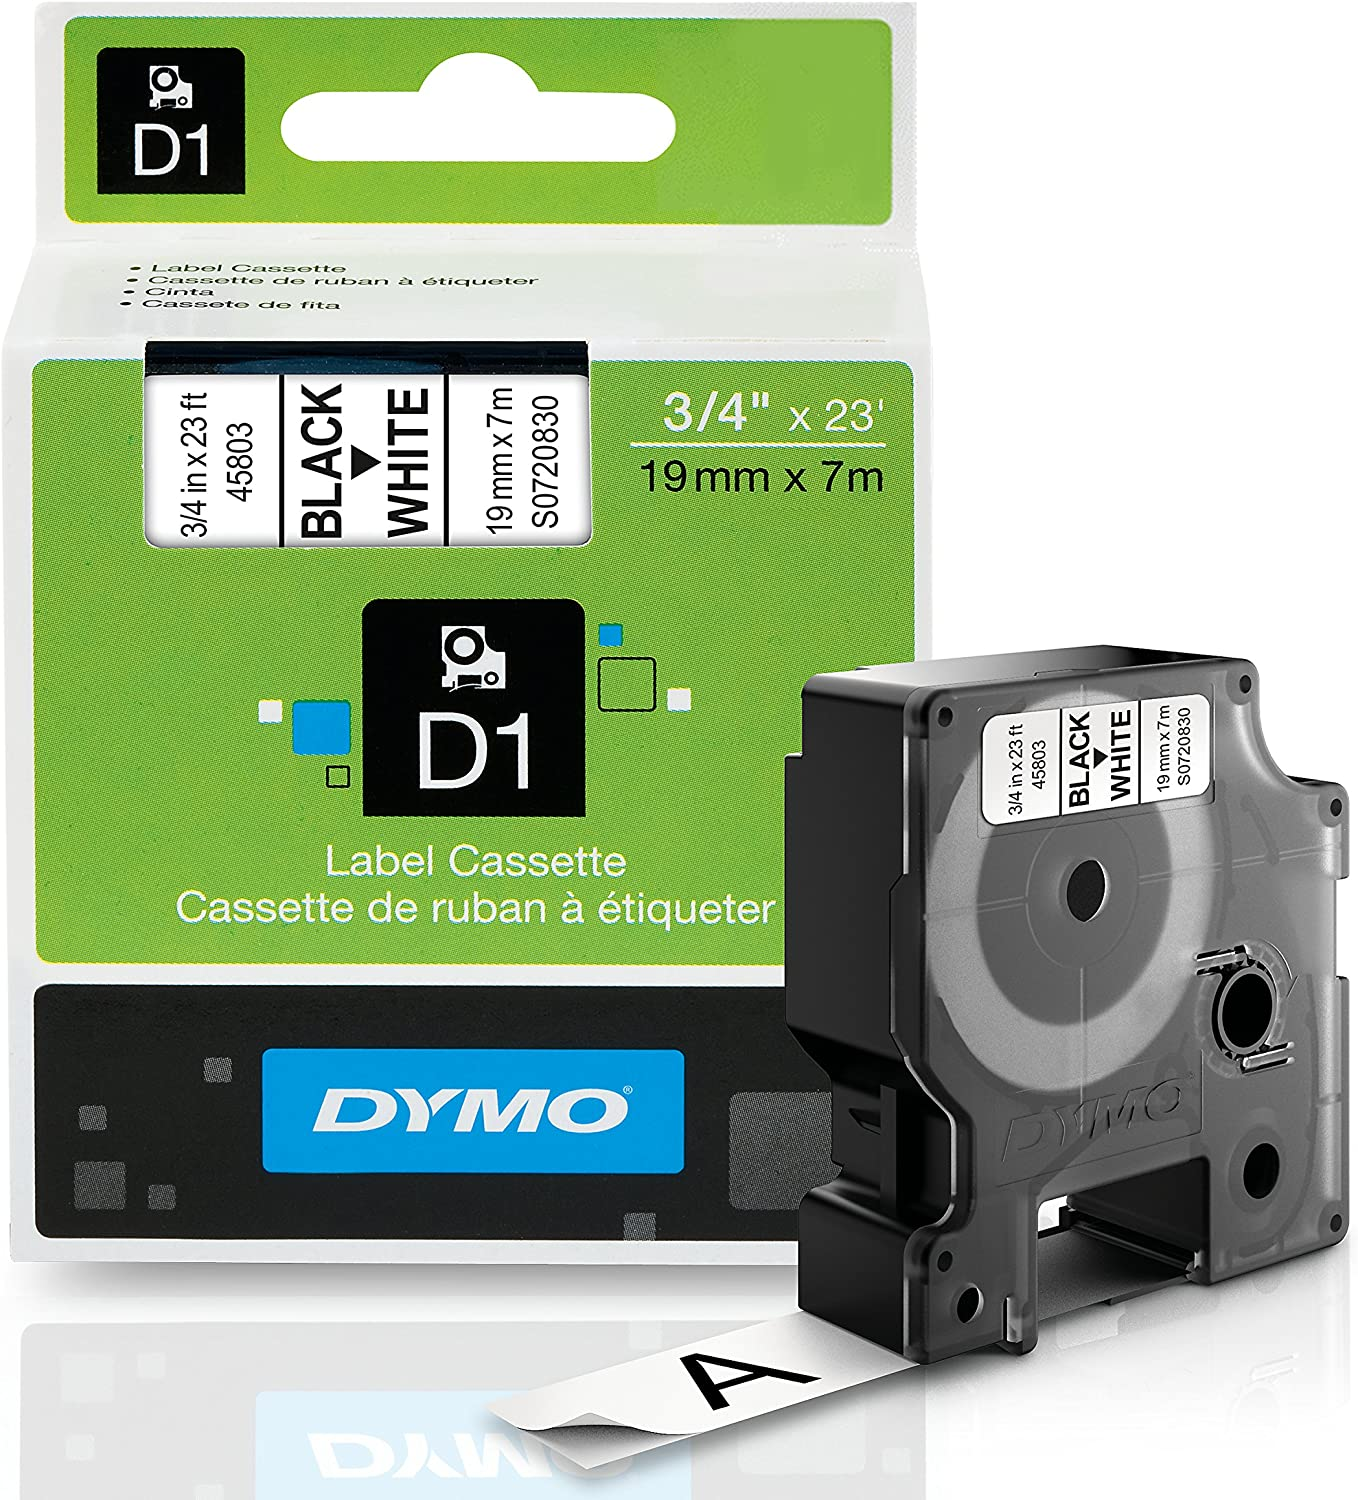 B00002NDRF DYMO Authentic Standard D1 Labeling Tape for LabelManager Label Makers, Black print on White tape, 3/4'' W x 23' L, 1 cartridge (45803) 91J%2B514bKtL